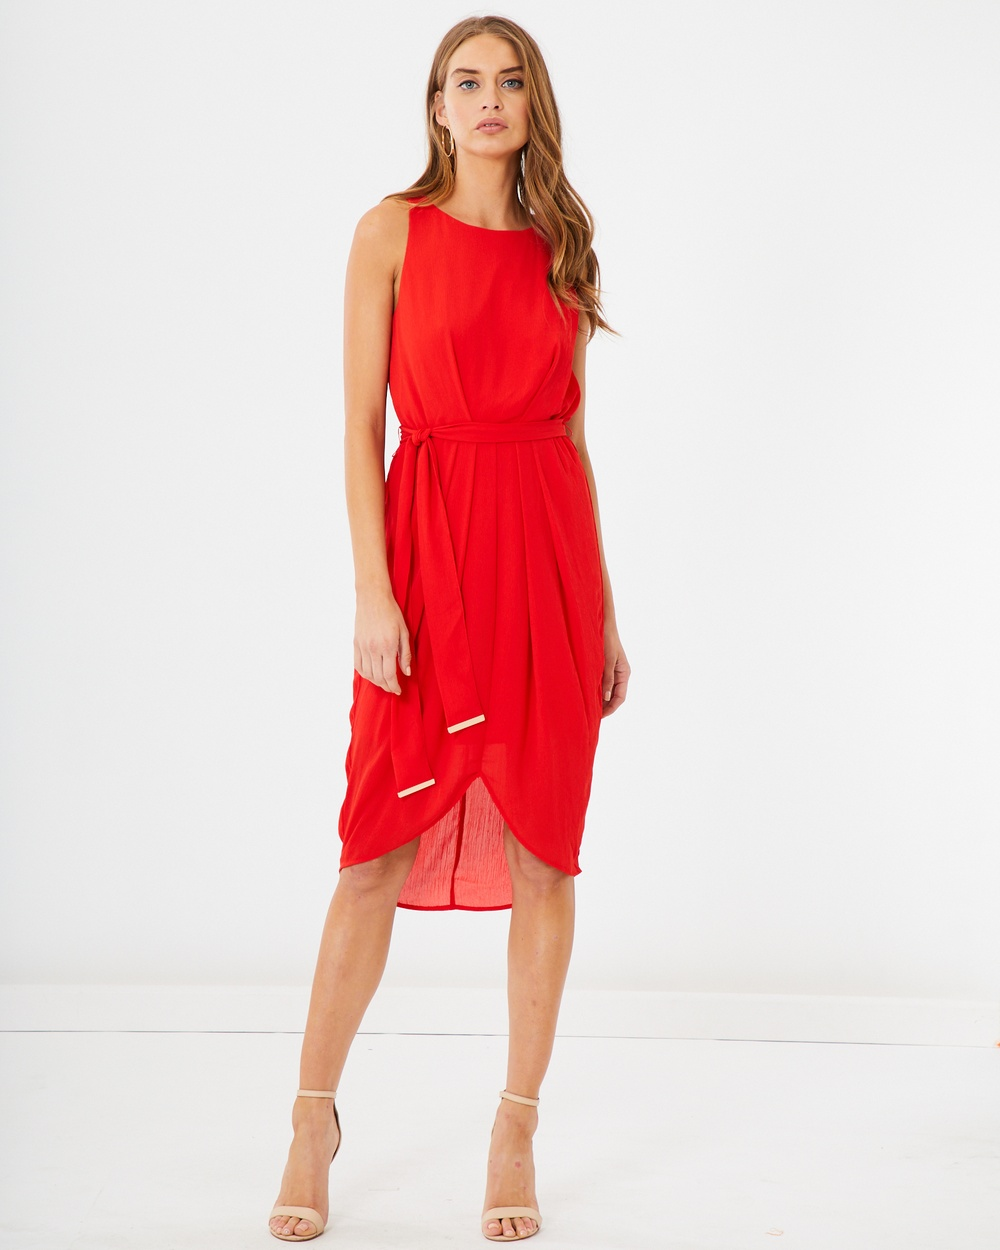 Photo of Tussah Red Cristobal Cocktail Dress - beautiful dress from Tussah online